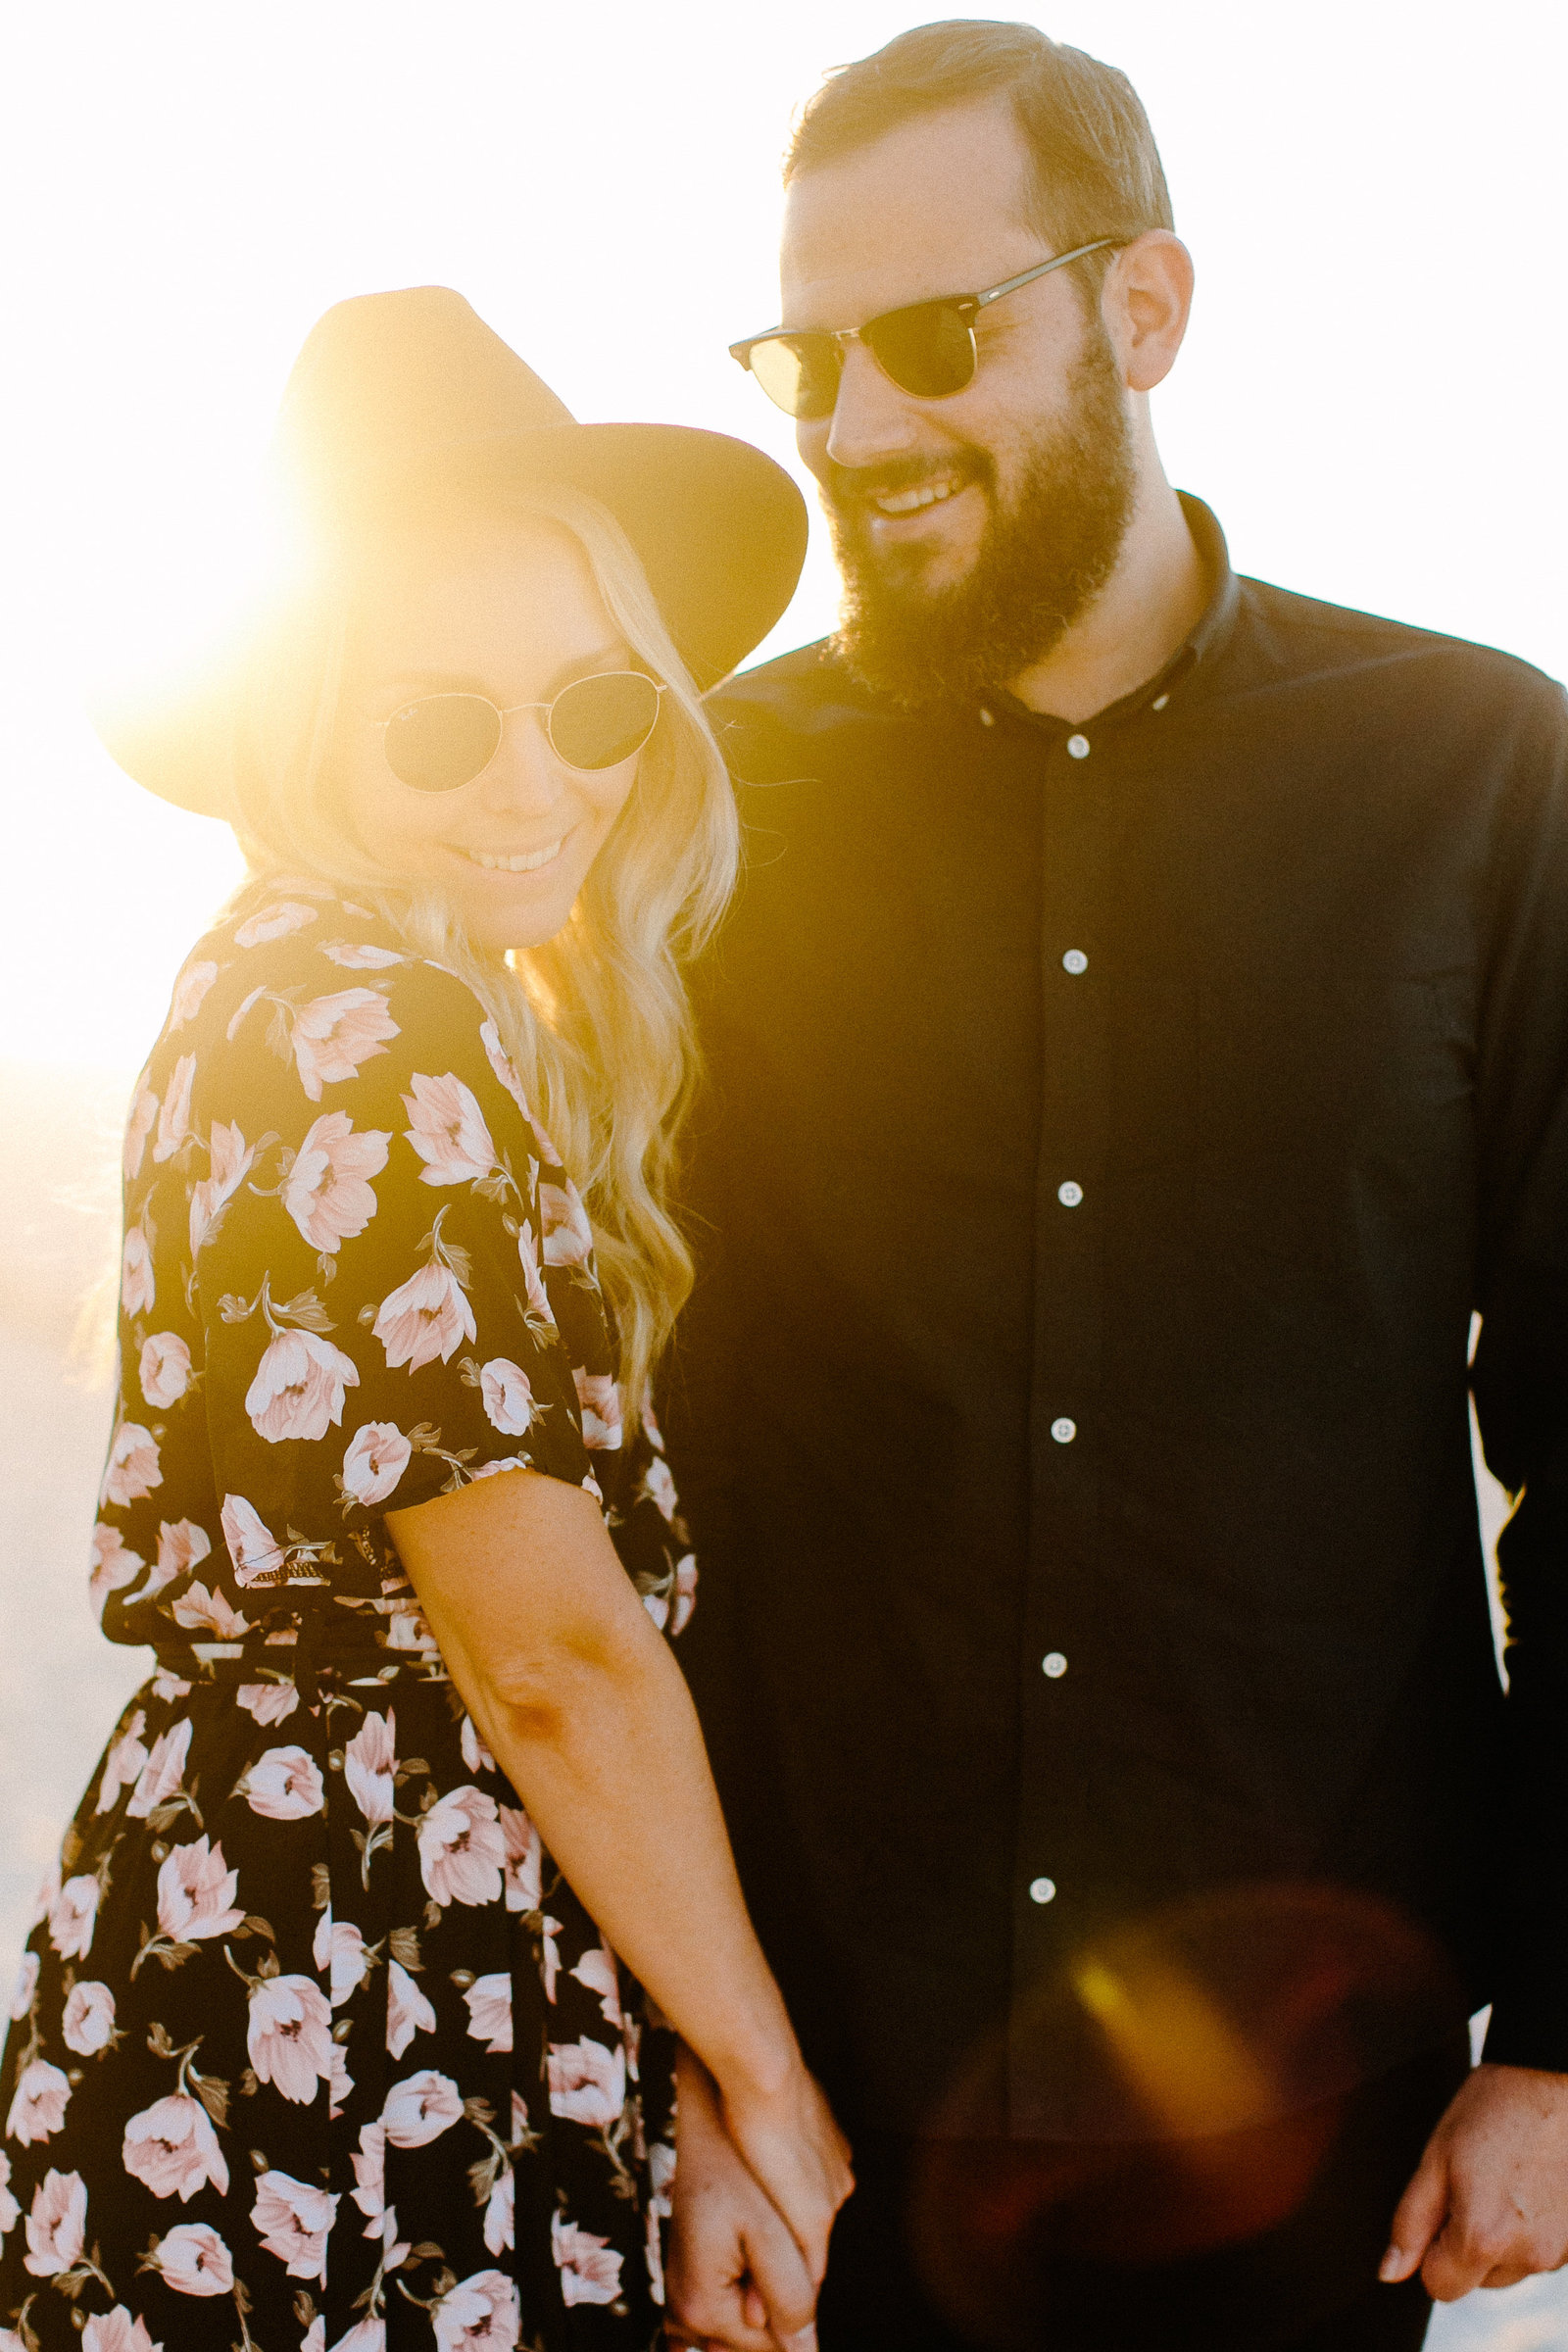 Julia_Winkler_Photography_Cape_Town_Couple_Engagement_Shoot_Wedding-21